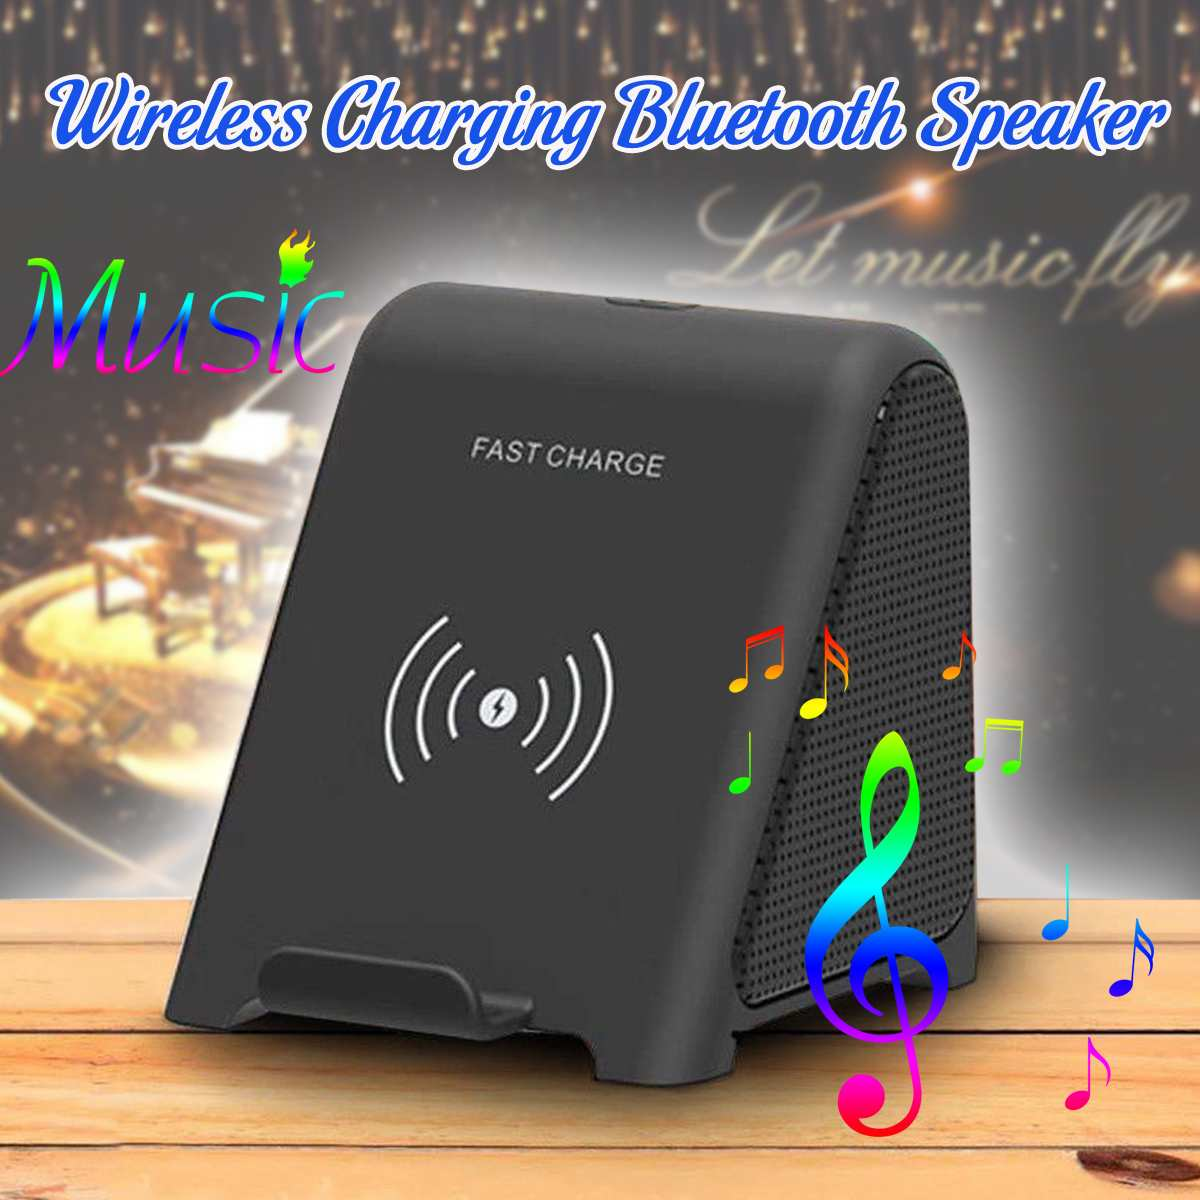 LEORY Qi Fast Wireless Charging Stand Charger With bluetooth Speaker For ALL Qi Phones Portable Audio & Video Speakers